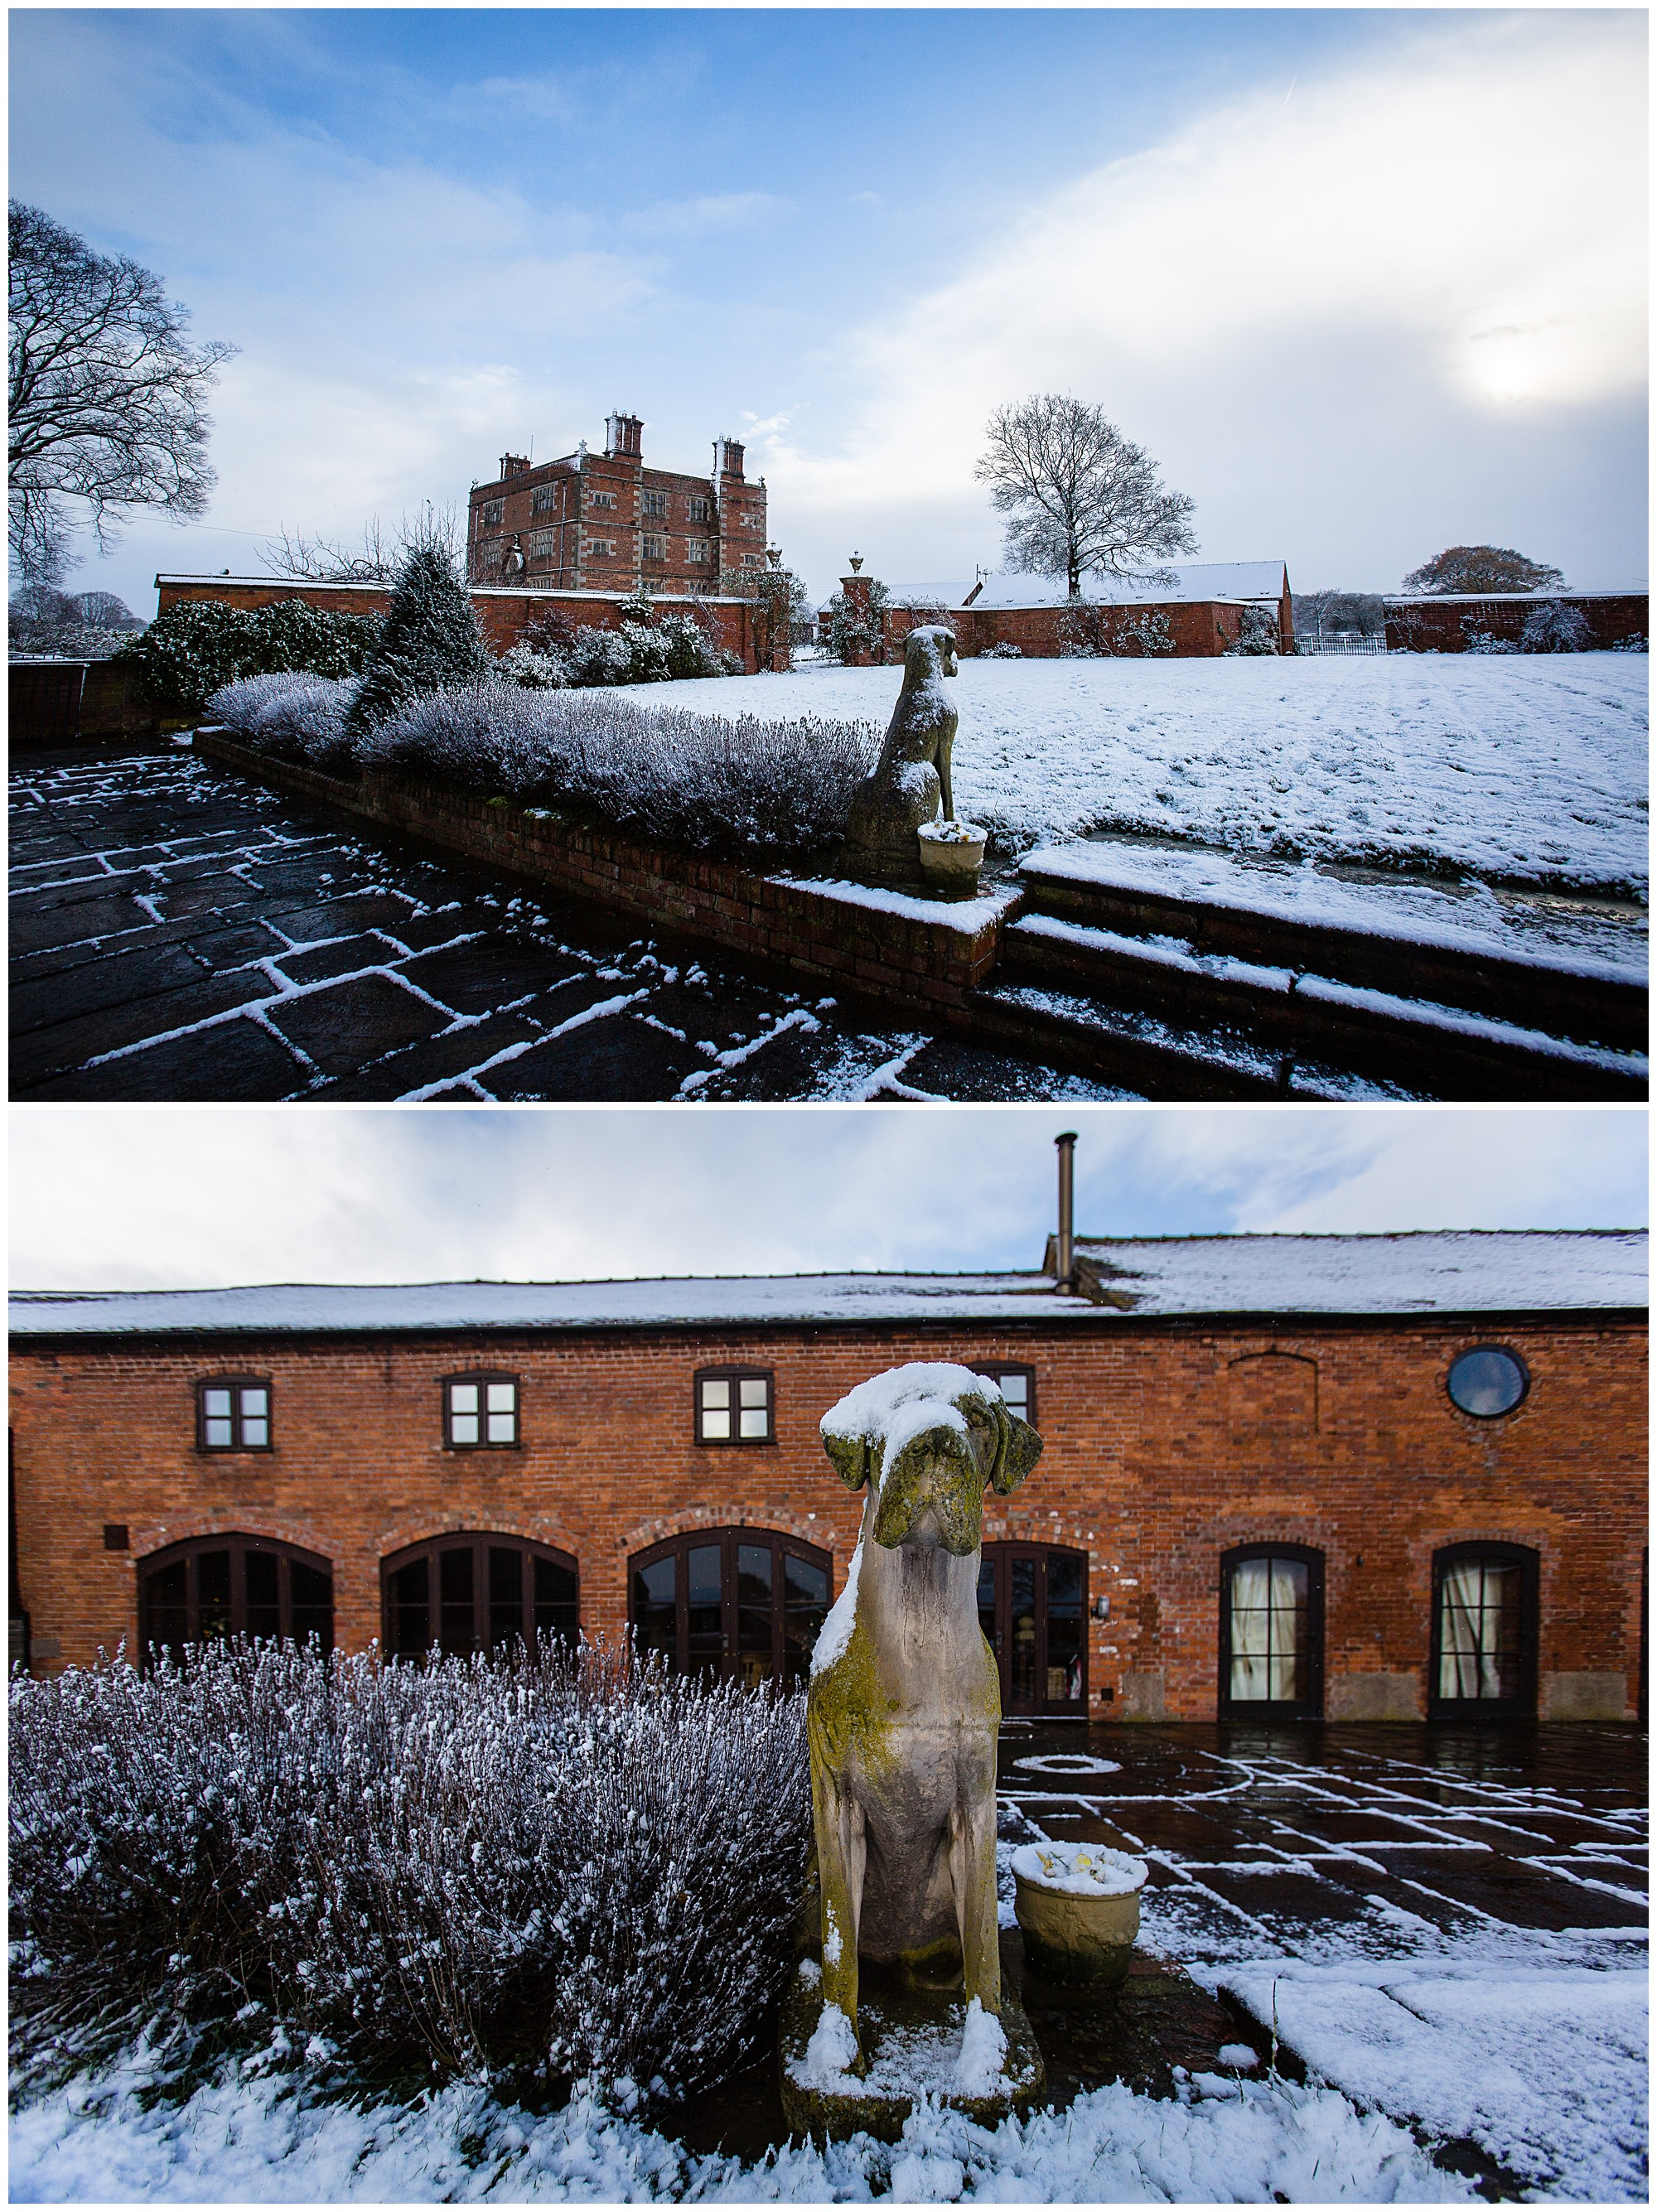 snowy statues at soulton hall, wem shrewsbury